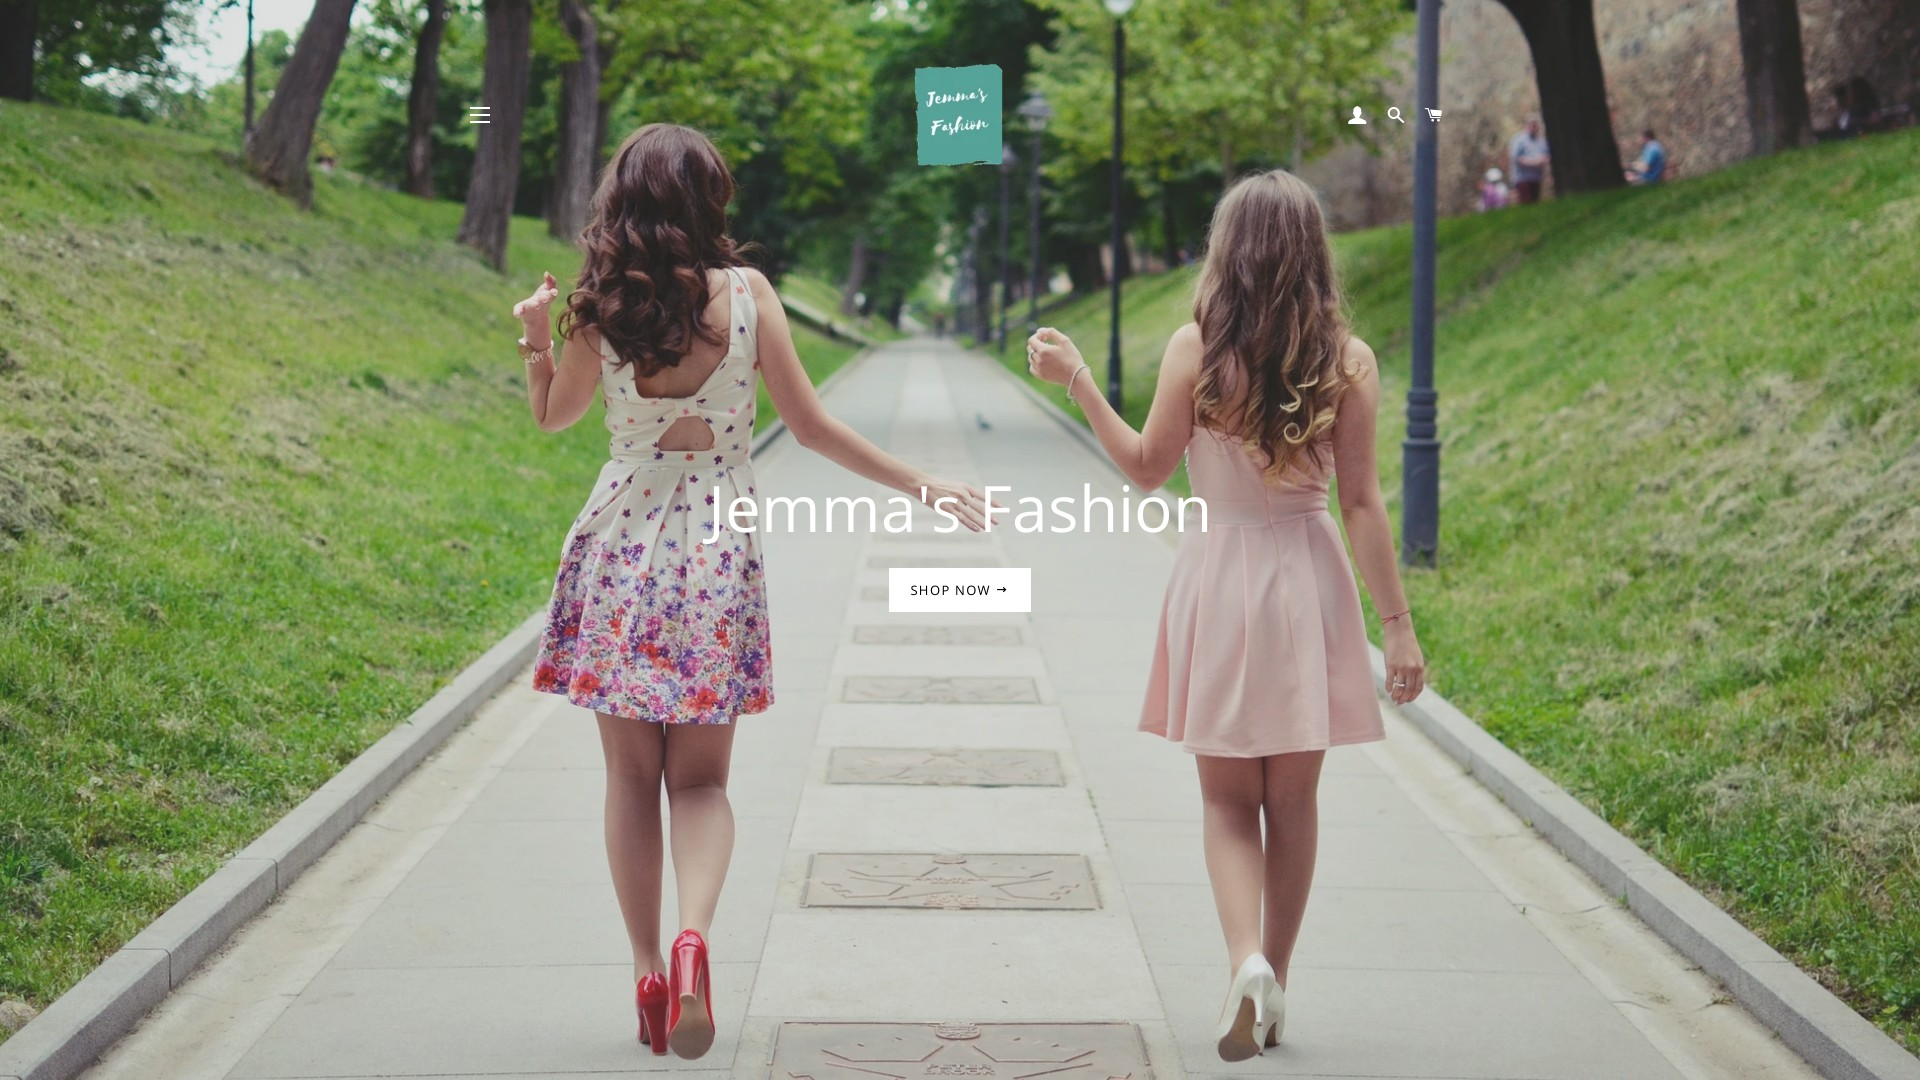 Is Jemmas Fashion a Scam? Review of the Online Store